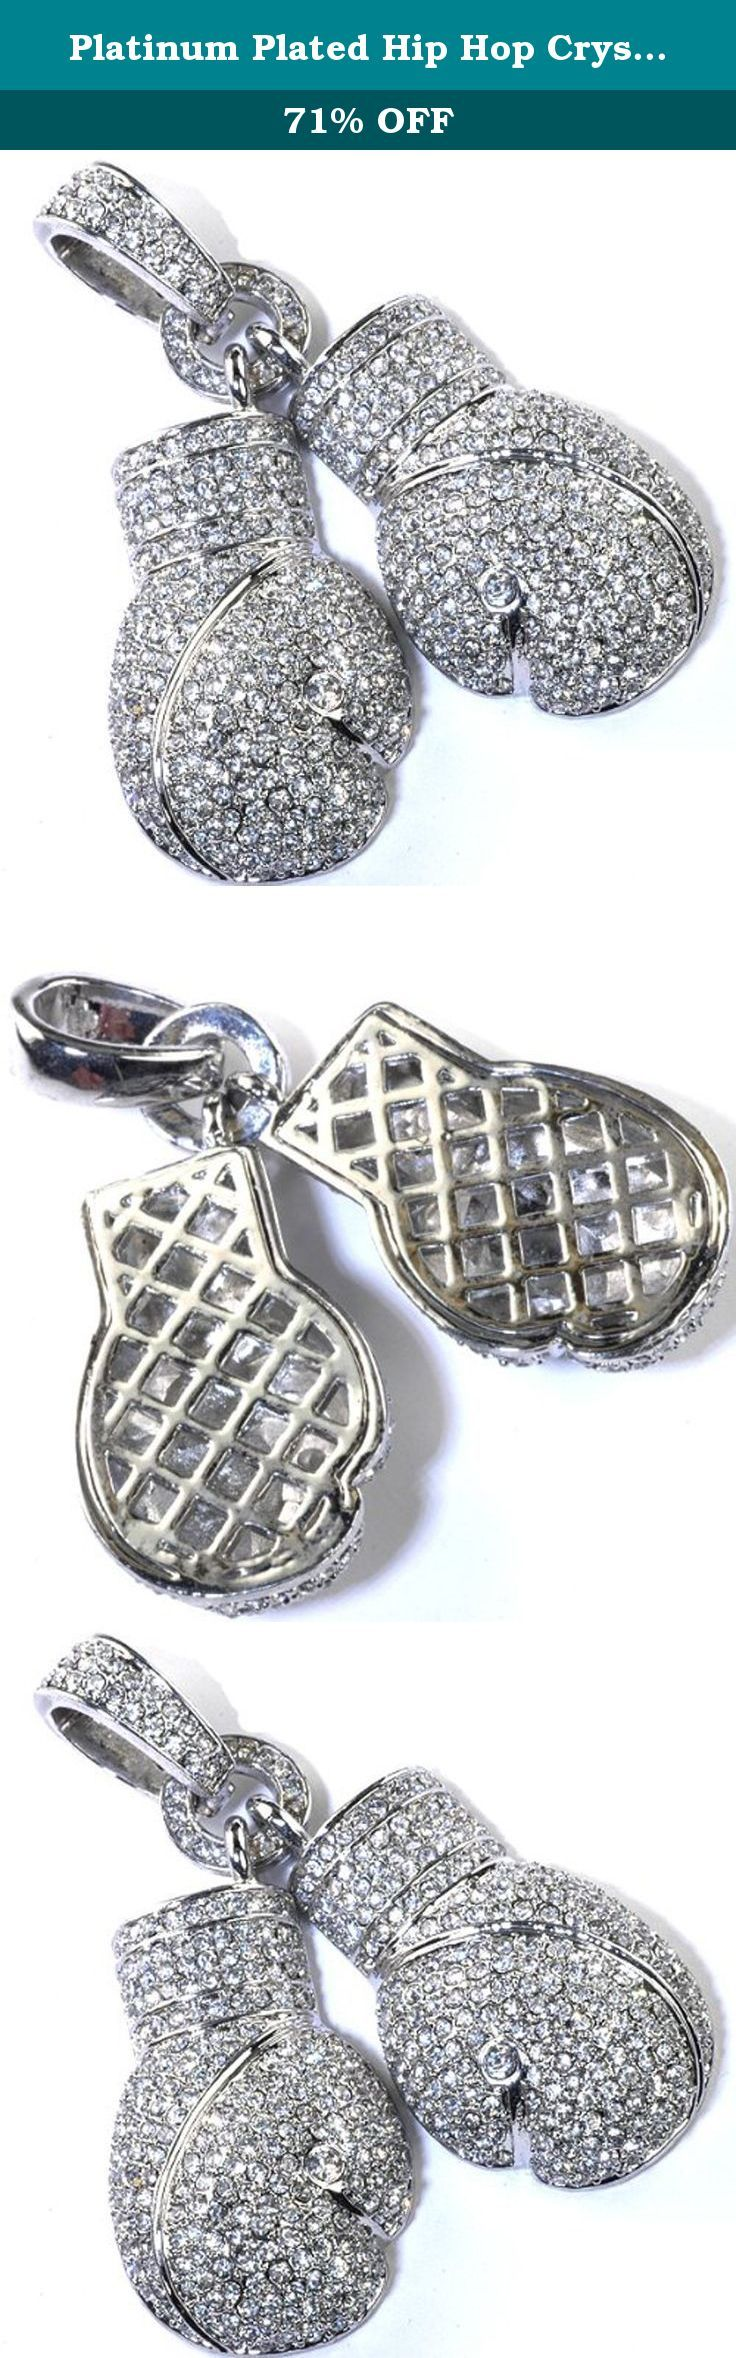 Platinum Plated Hip Hop Crystals Iced Micro Pave Fighting Gloves Pendant. This lovely Hip Hop pendant is iced out. All our products with FREE gift box and 100% Satisfaction guarantee. SKU # 24084-W.